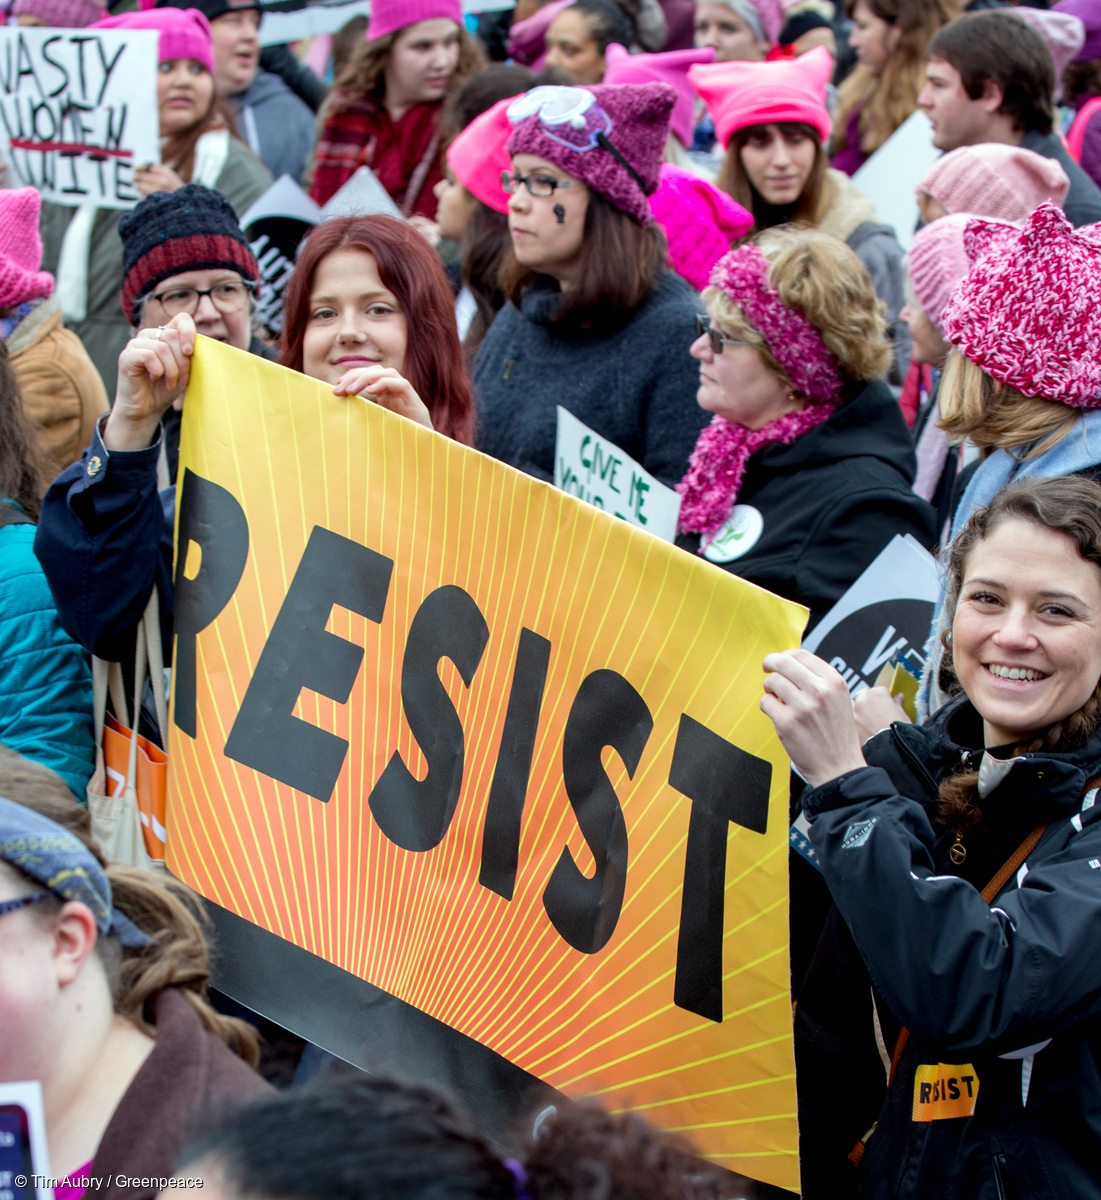 Nearly half a million people gathered in Washington, D.C. to mount a roaring response to the inauguration of U.S. President Donald Trump a day earlier. Millions of women around the world marched in a historic rebuke of a new president packing cities from Los Angeles to London, Paris and Melbourne.